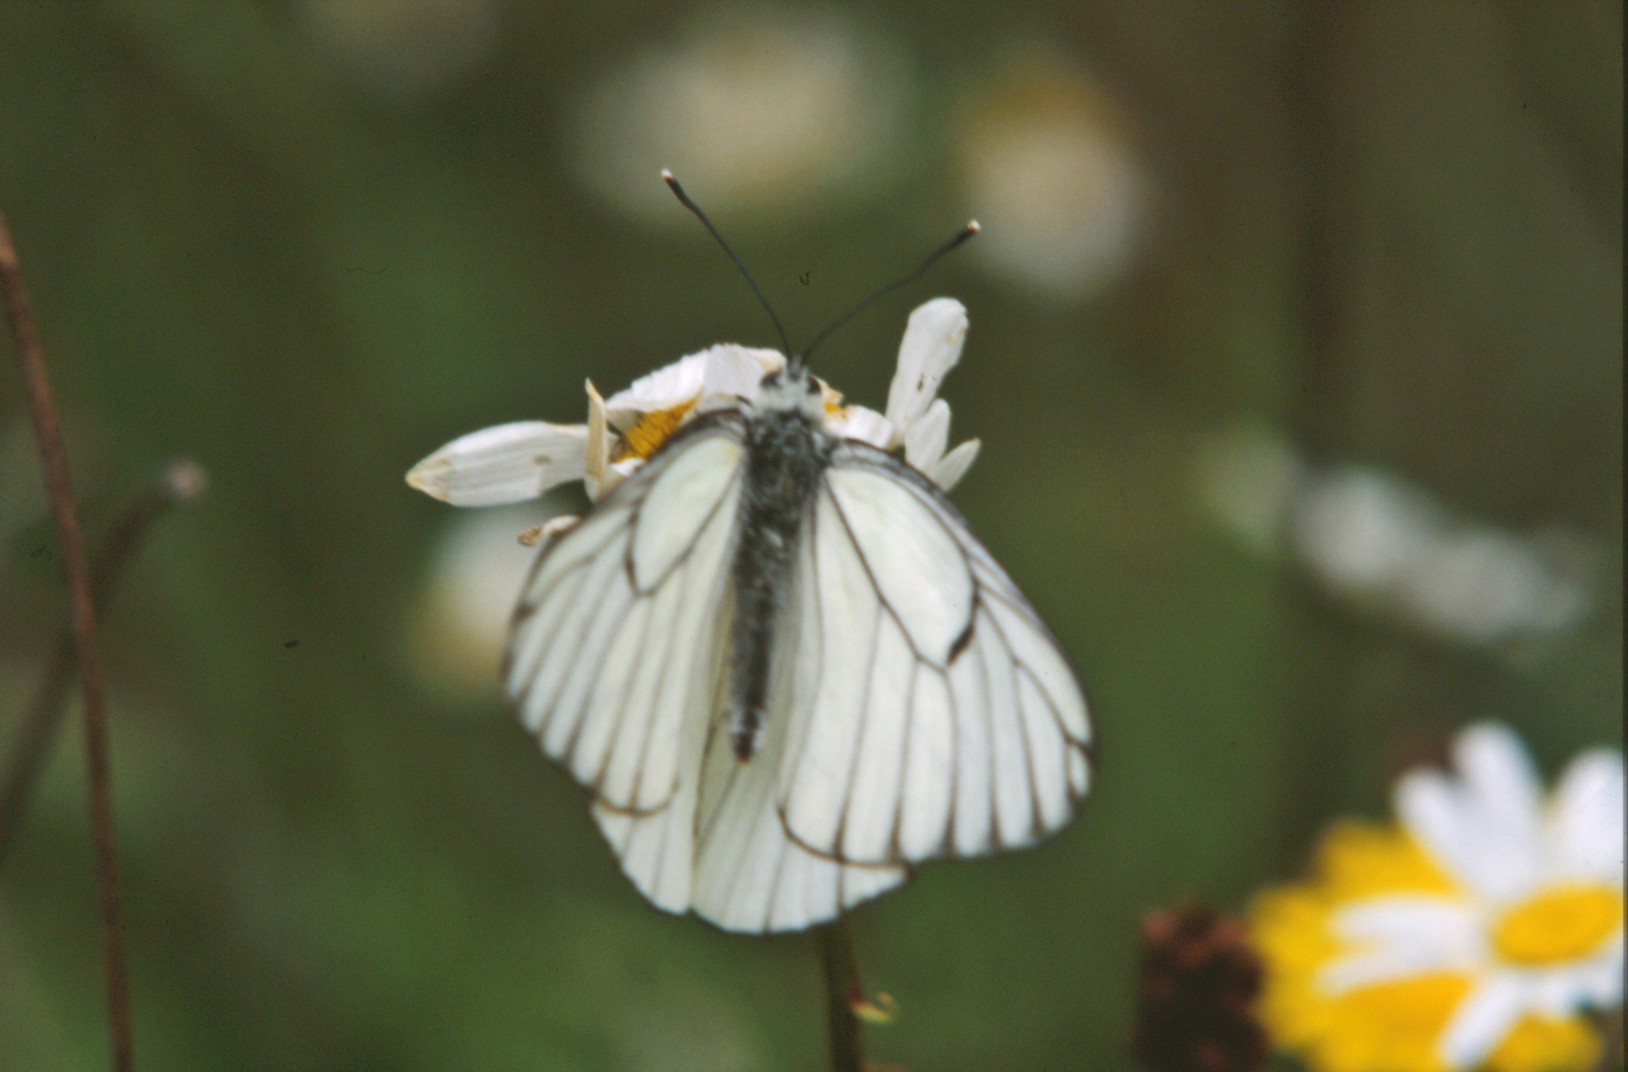 White butterfly, Beautiful, Bright, Bug, Butterflies, HQ Photo